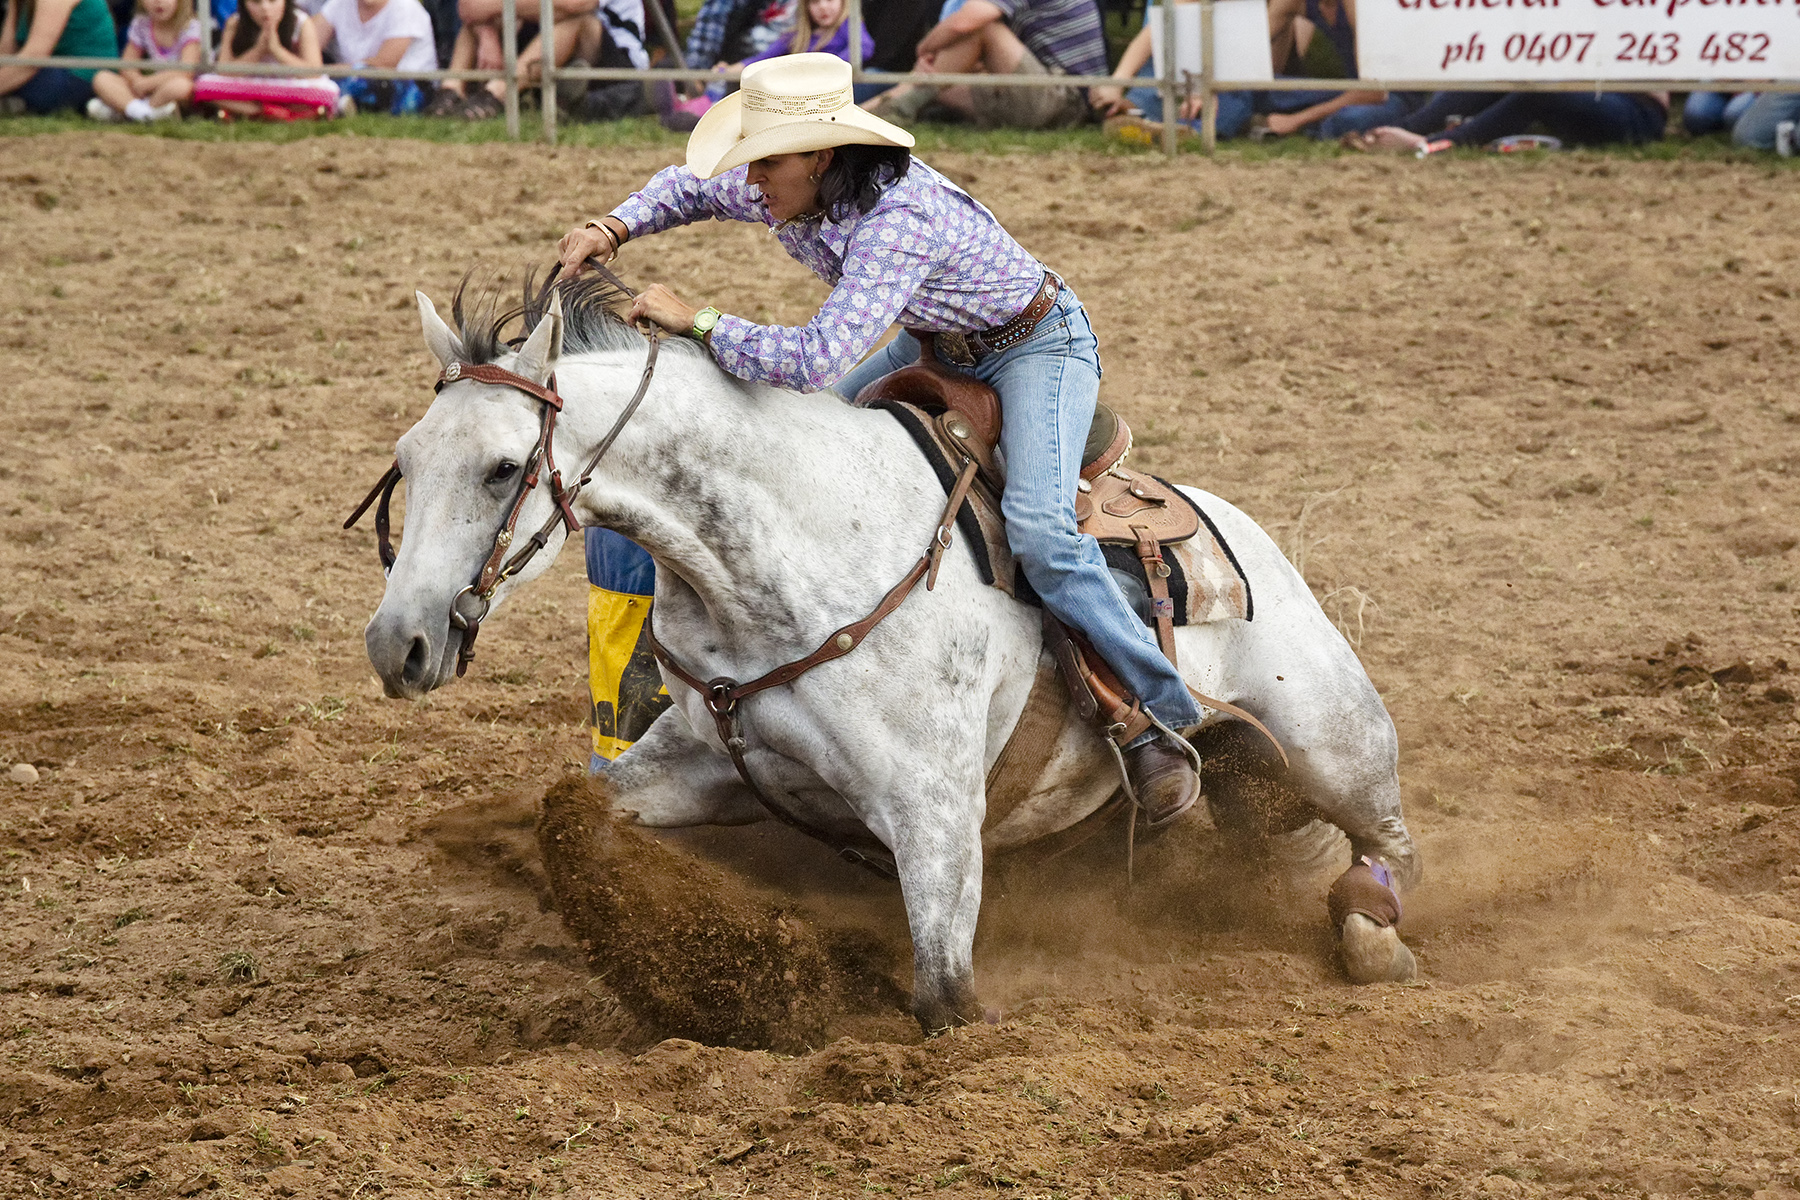 Brian_Jones_Rodeo Thrills and Spills_Barrel Race 2_2.jpg